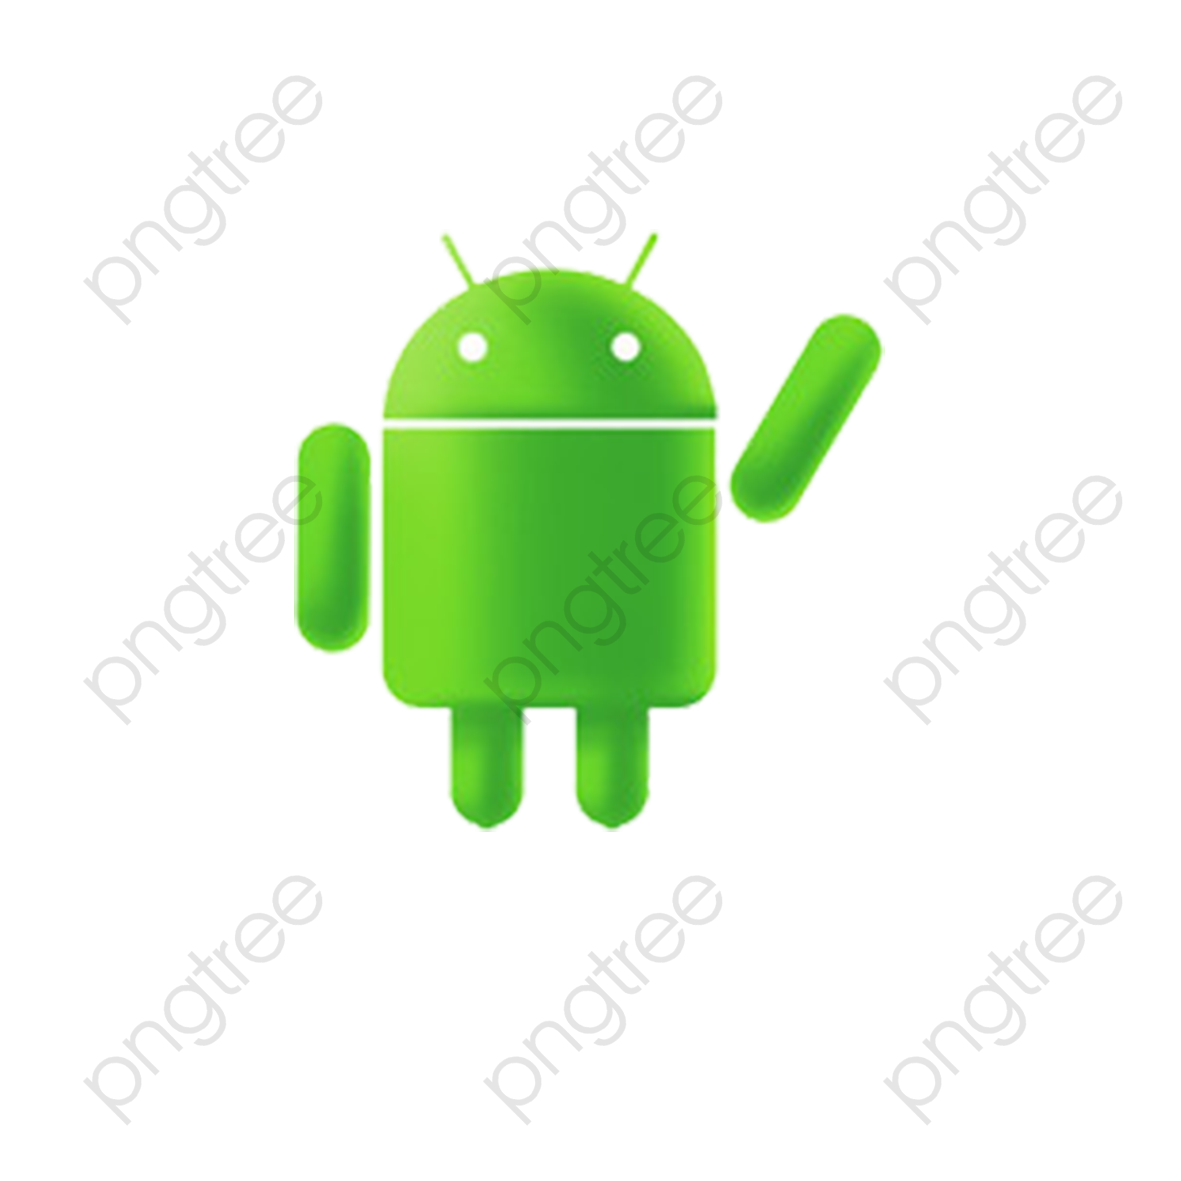 Android Robot, Robot, Mark, Android PNG Transparent Clipart Image.